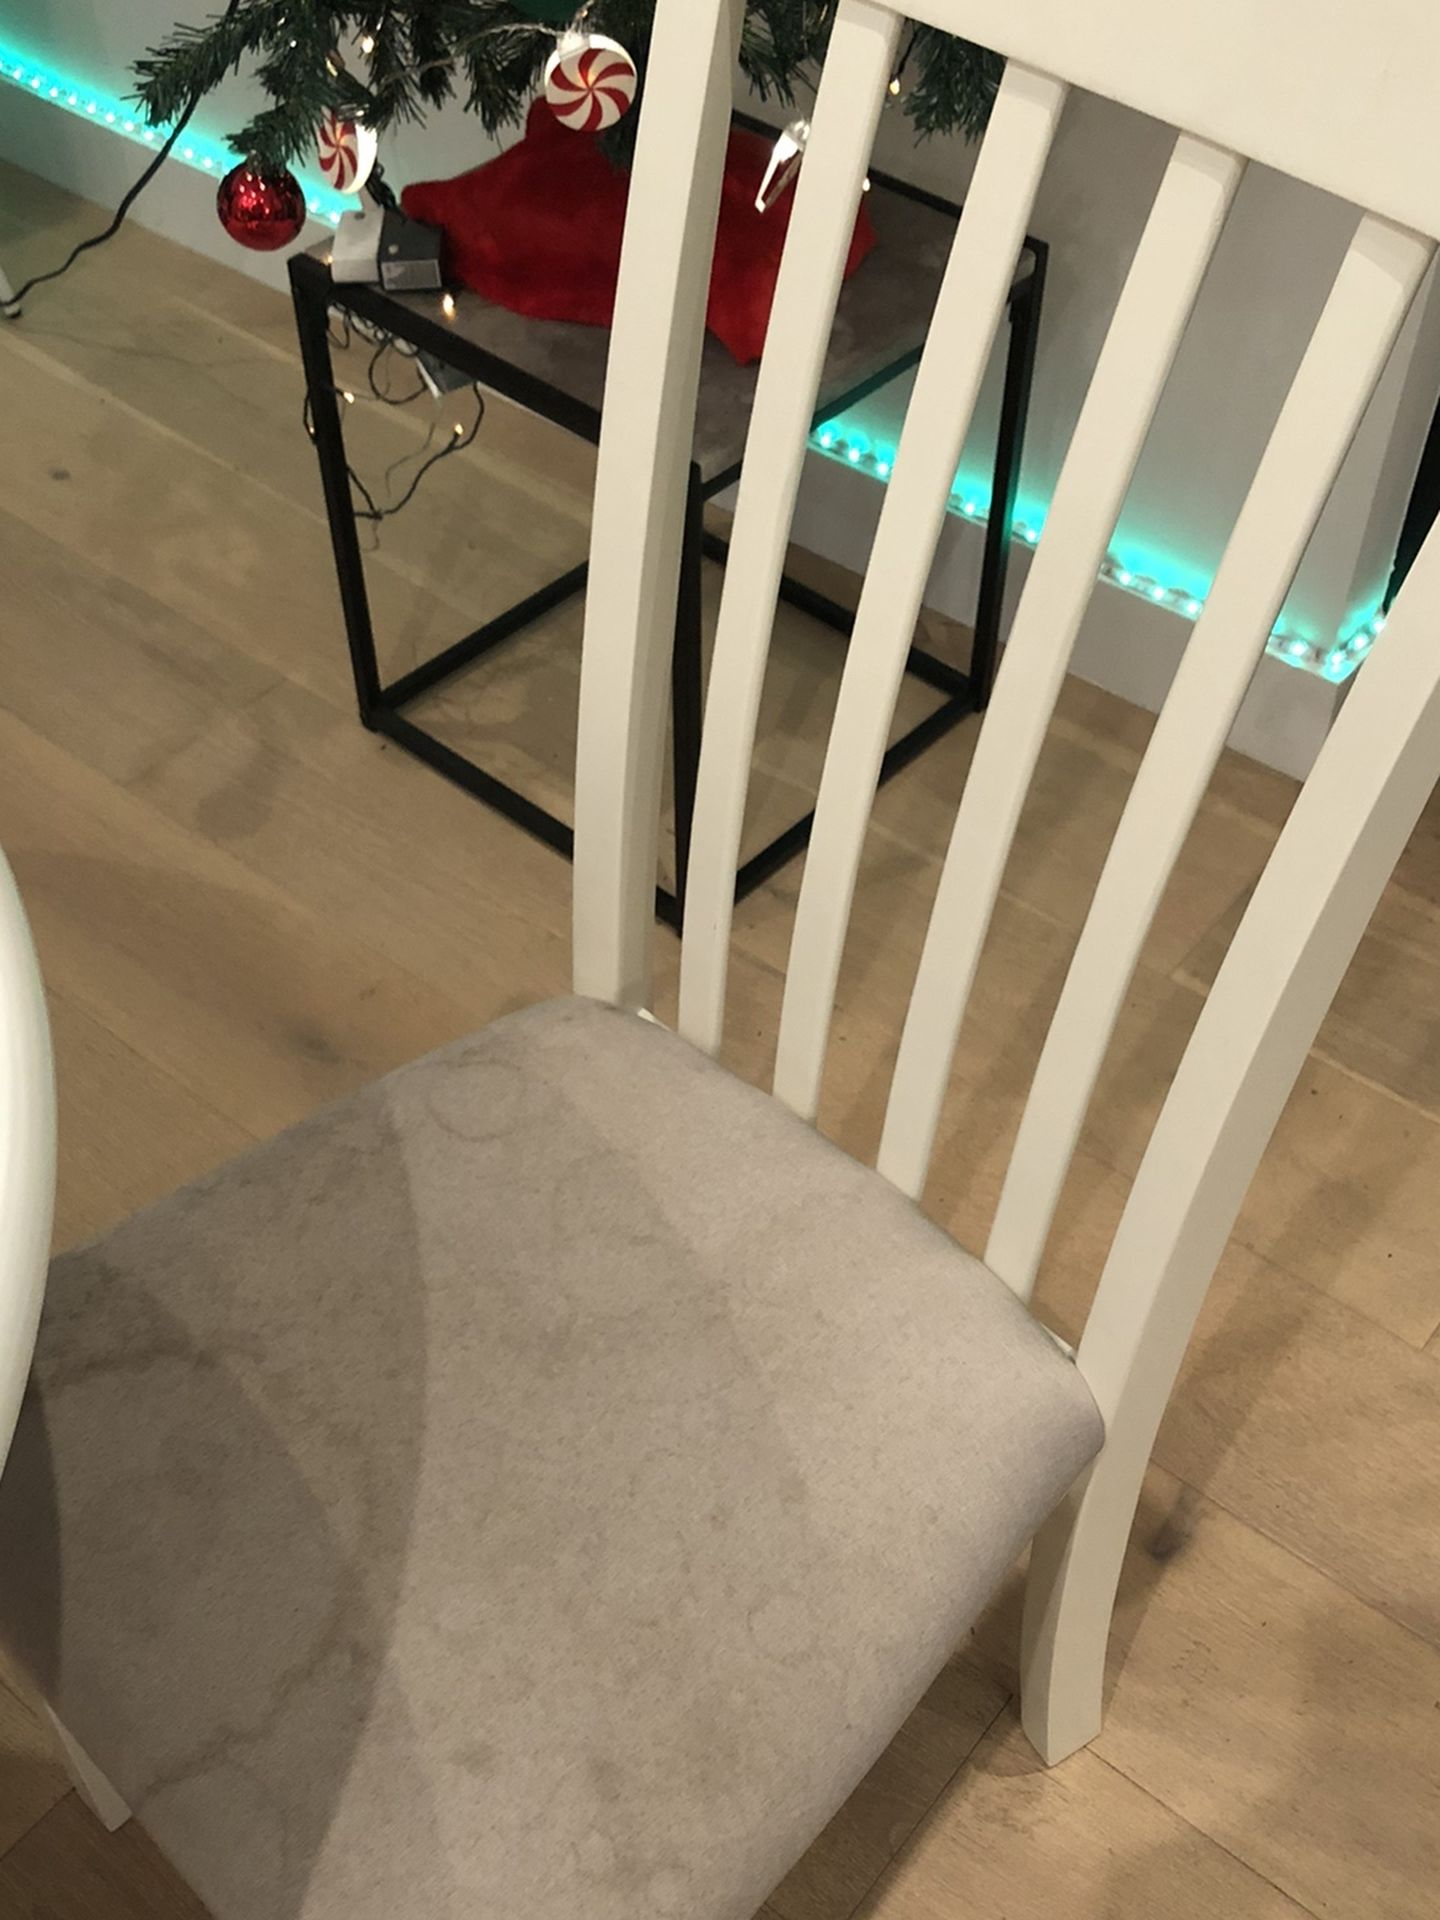 2 Chairs - Ashley Slannery Dining Room Chair, White